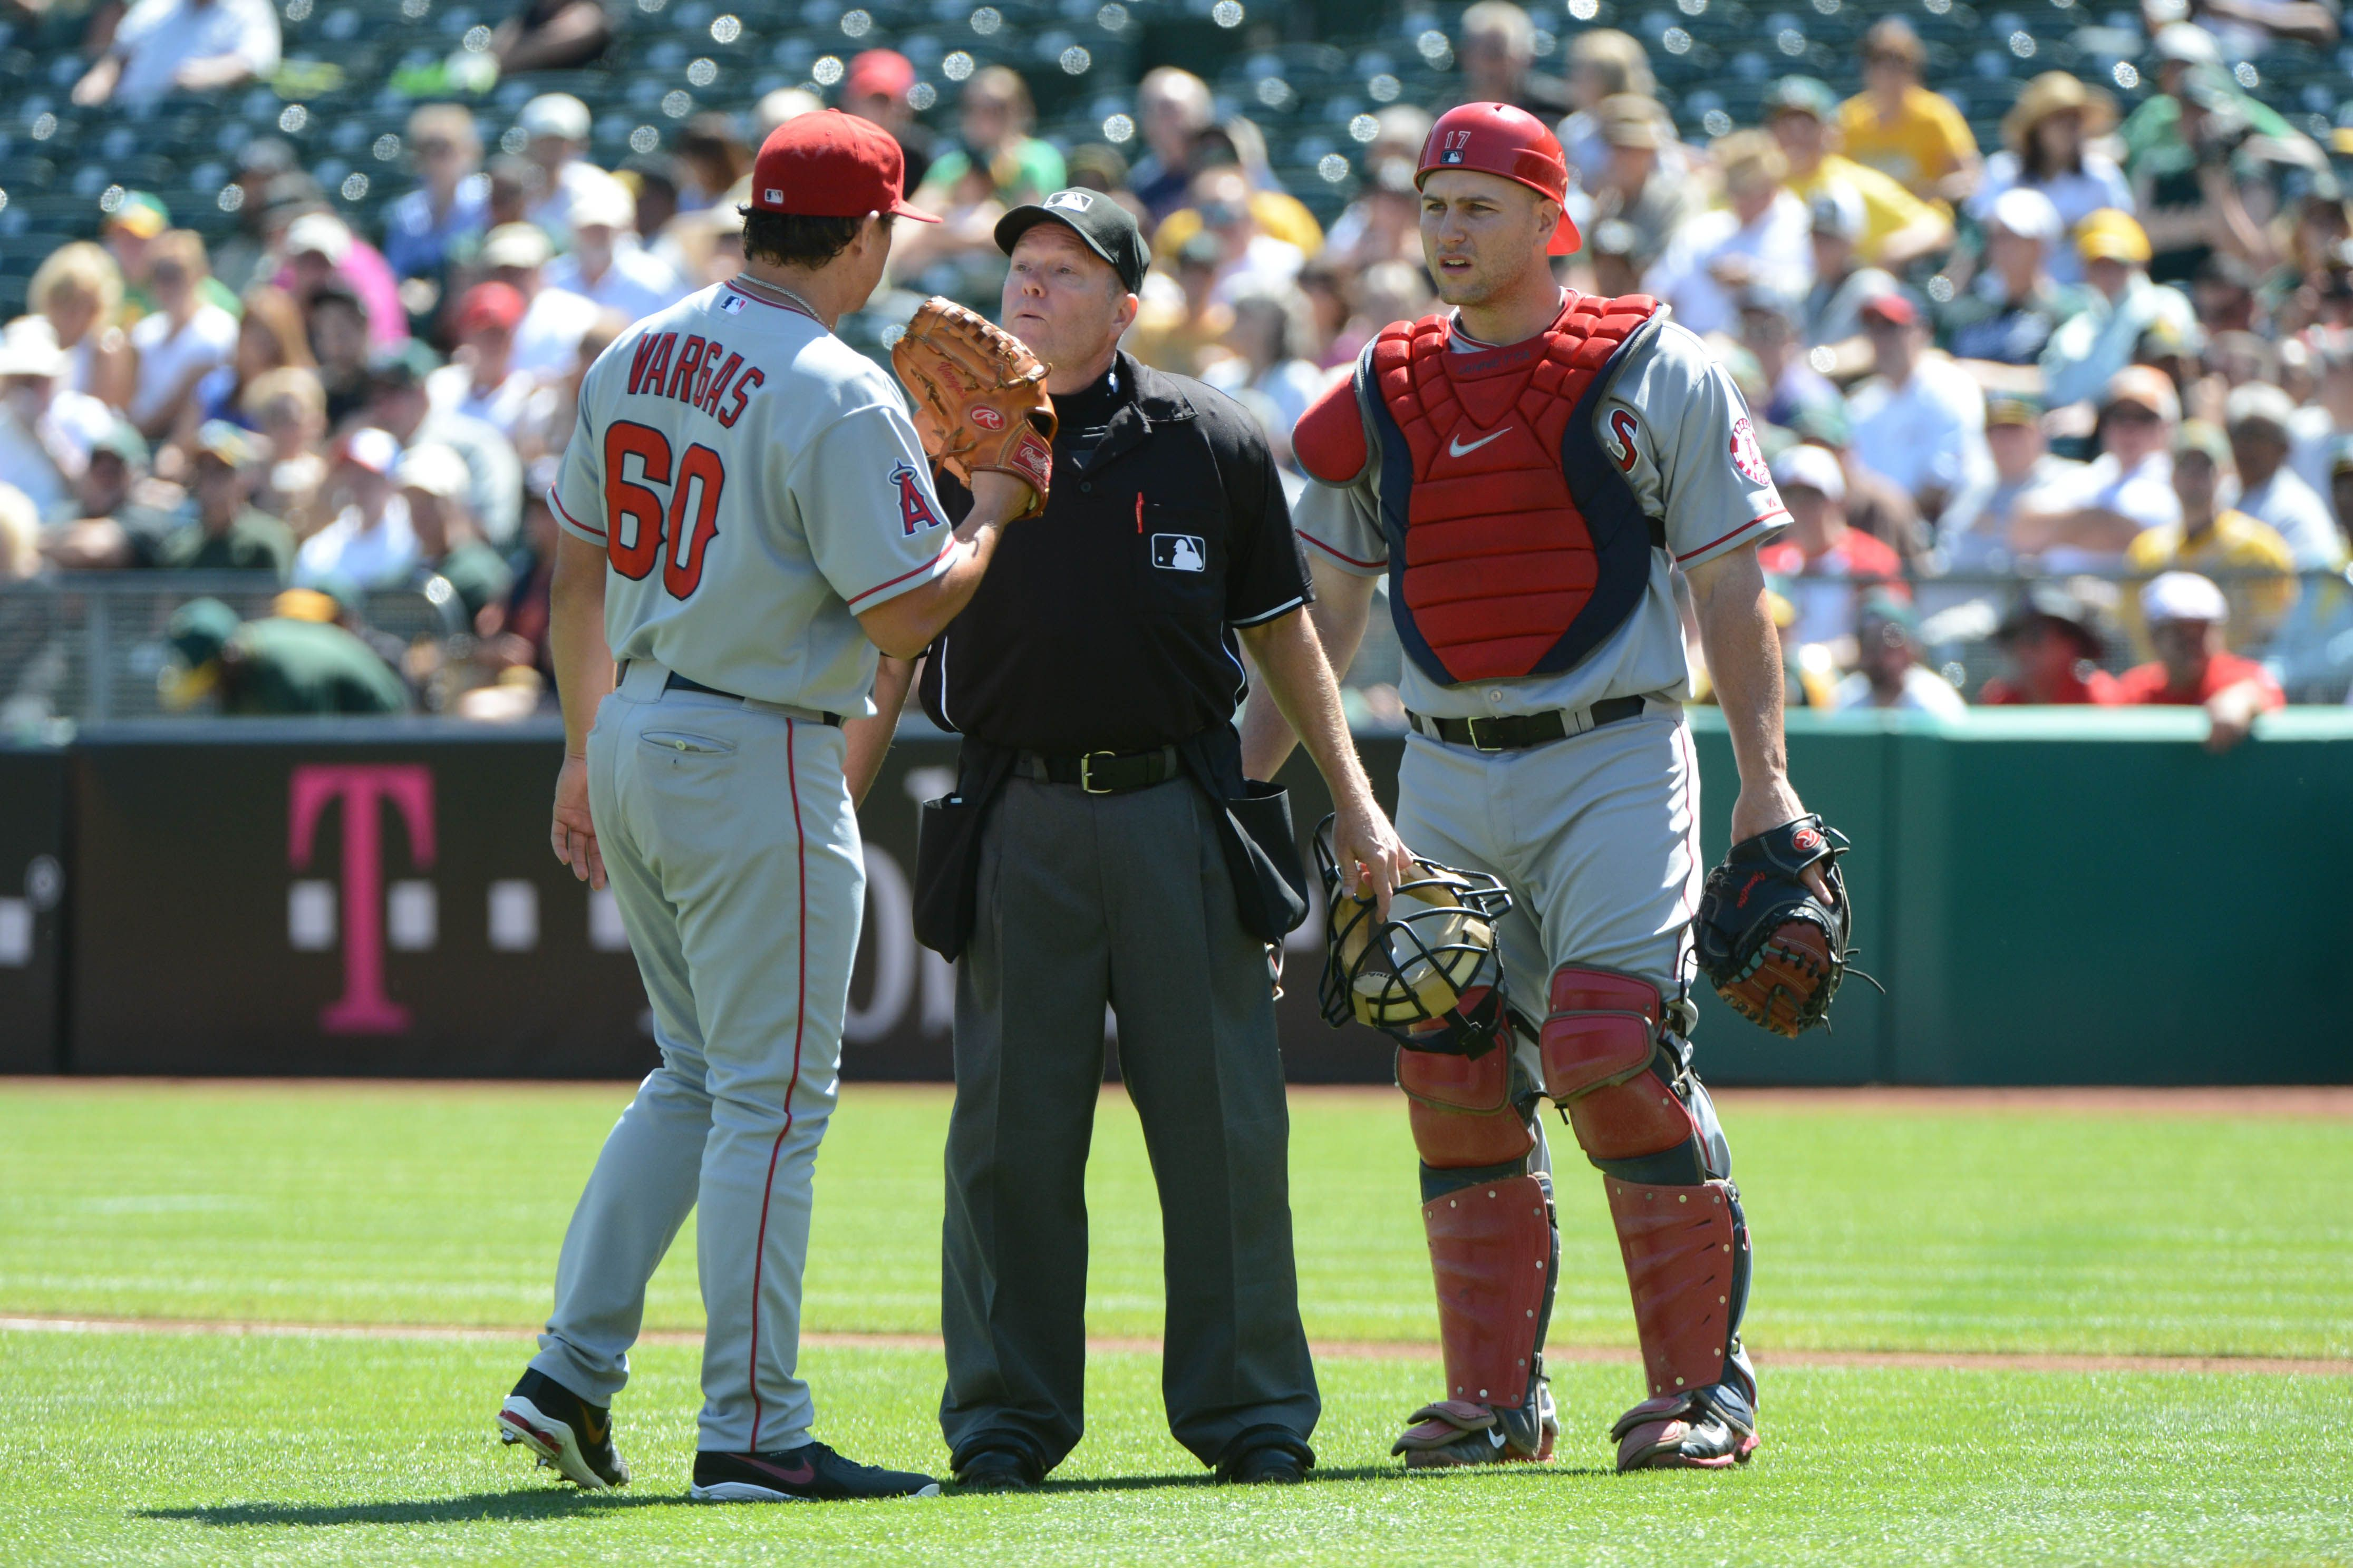 Crowdcam Hot Shot Mlb Umpire Jerry Meals Warns Los Angeles Angels Starting Pitcher Jason Vargas After A Hit By Pi Oakland Athletics Los Angeles Angels Athlete